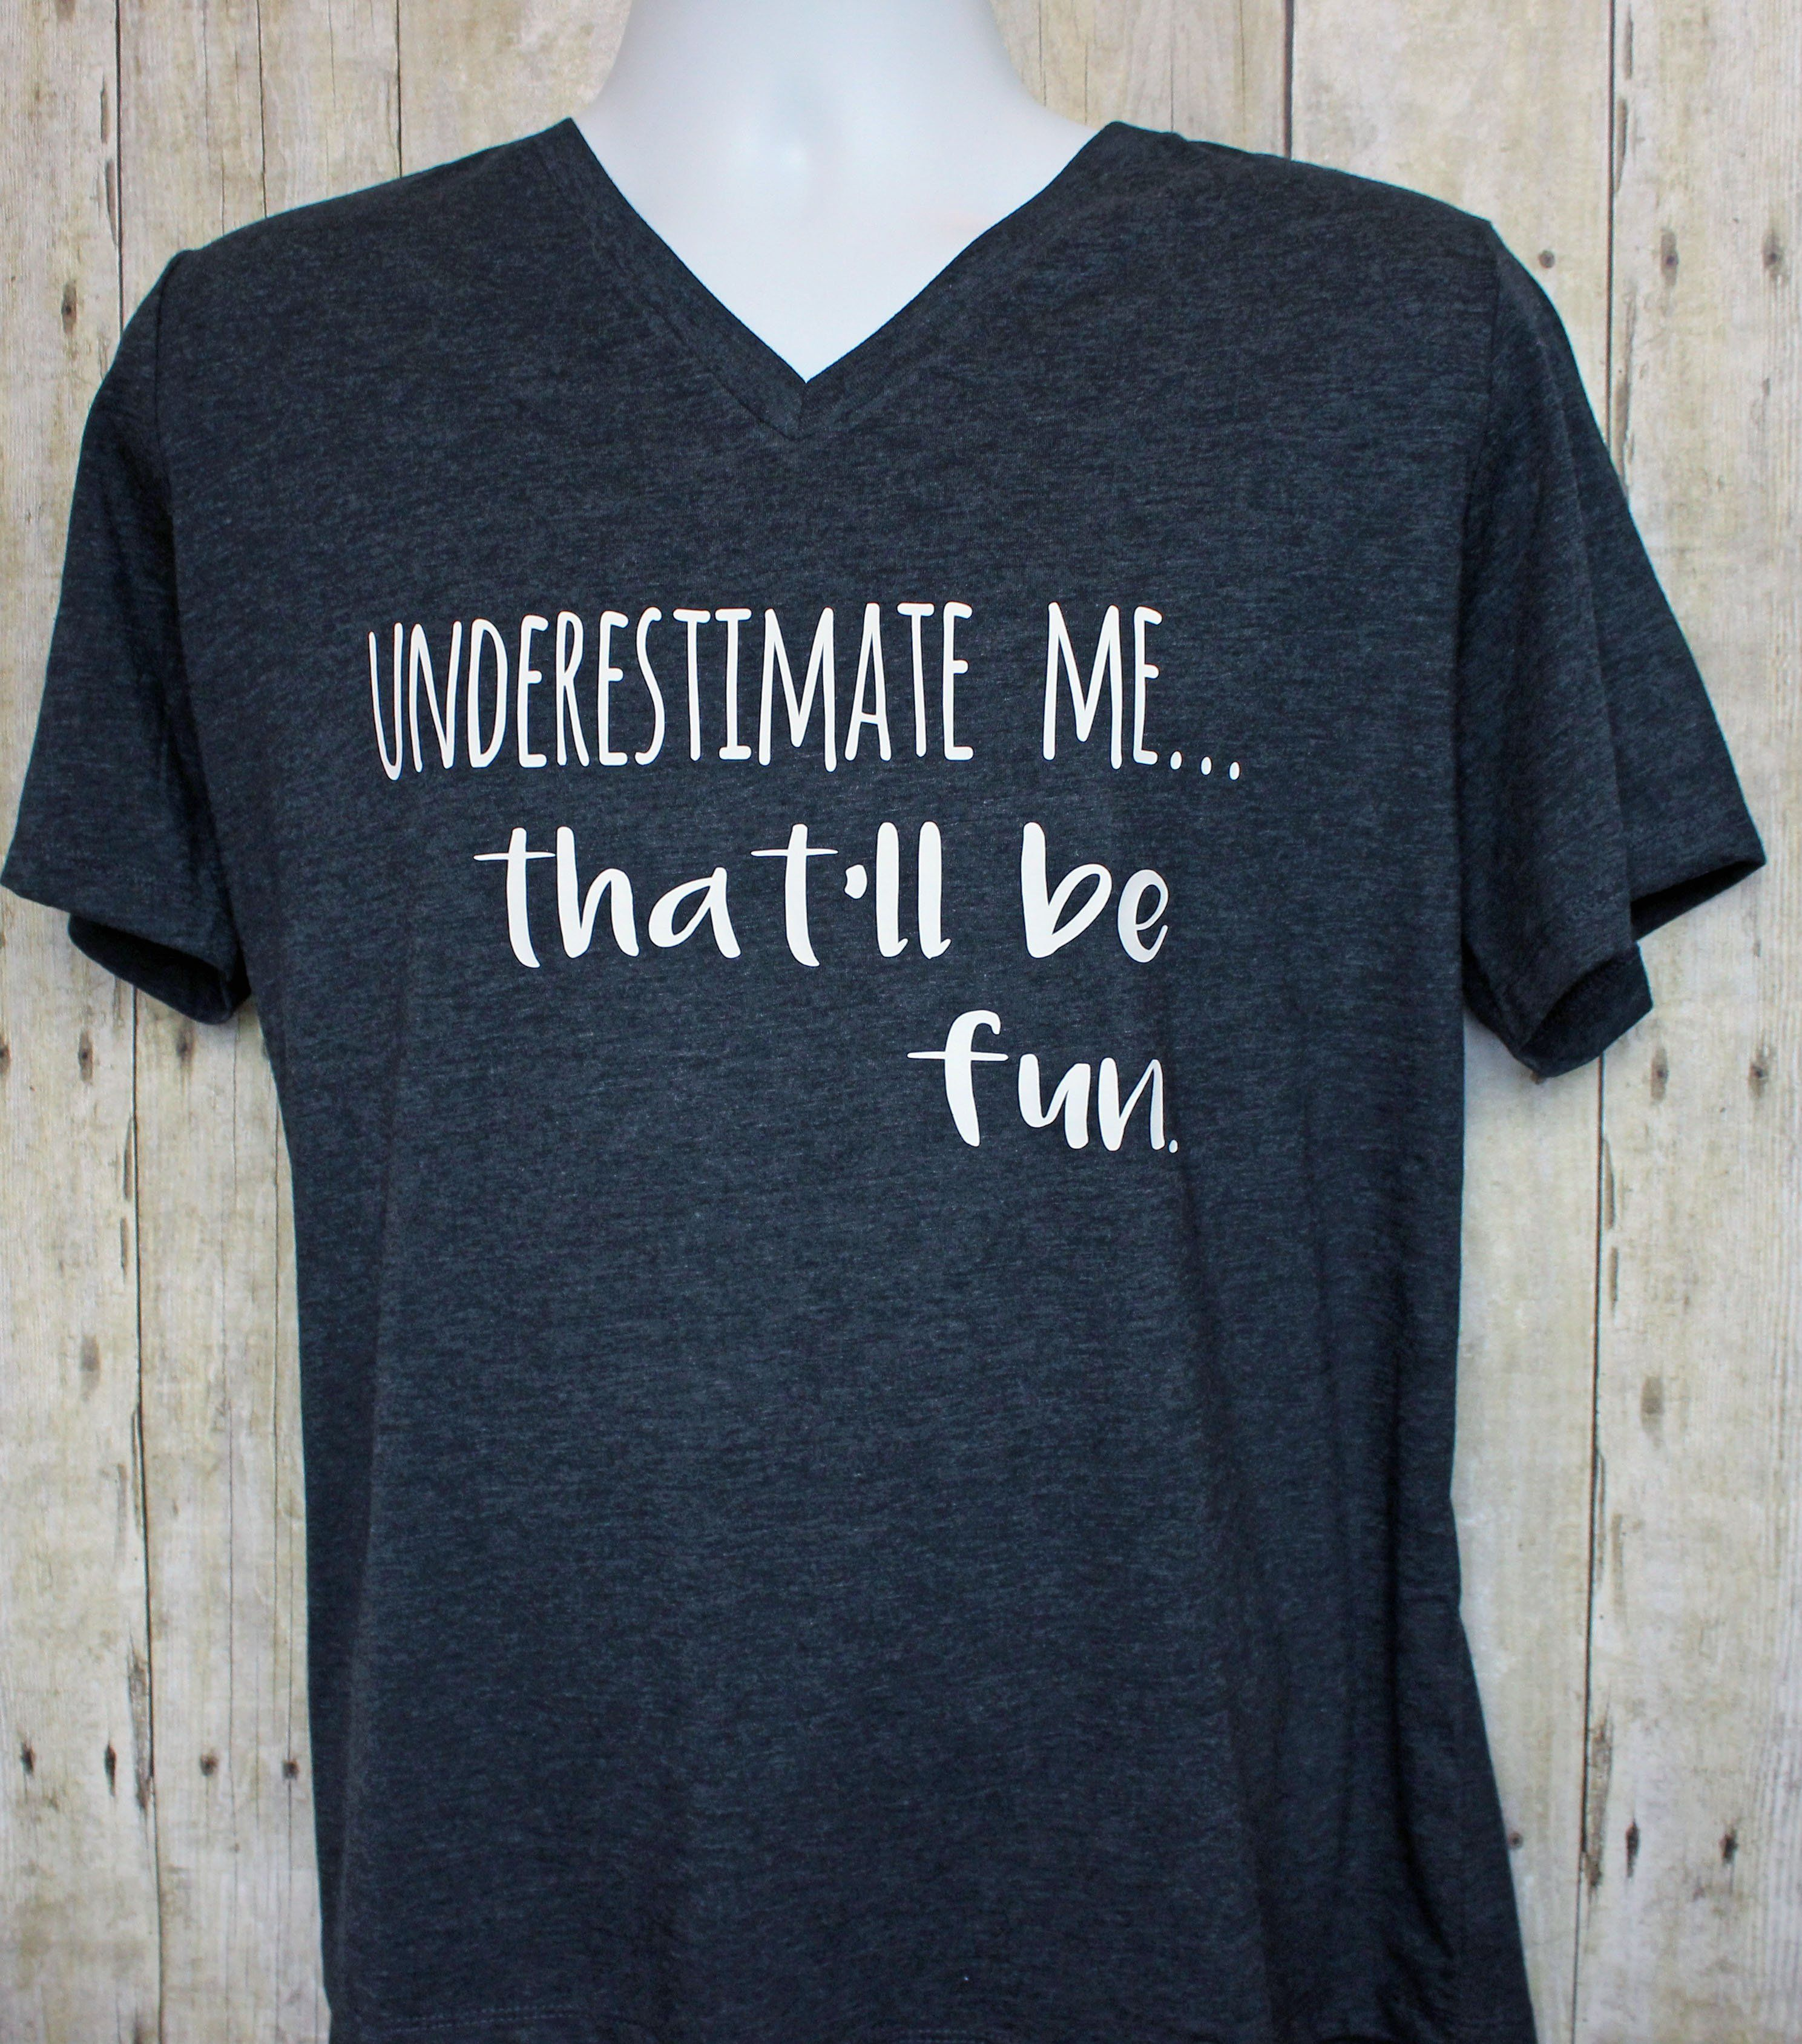 underestimate me - tank and shirt